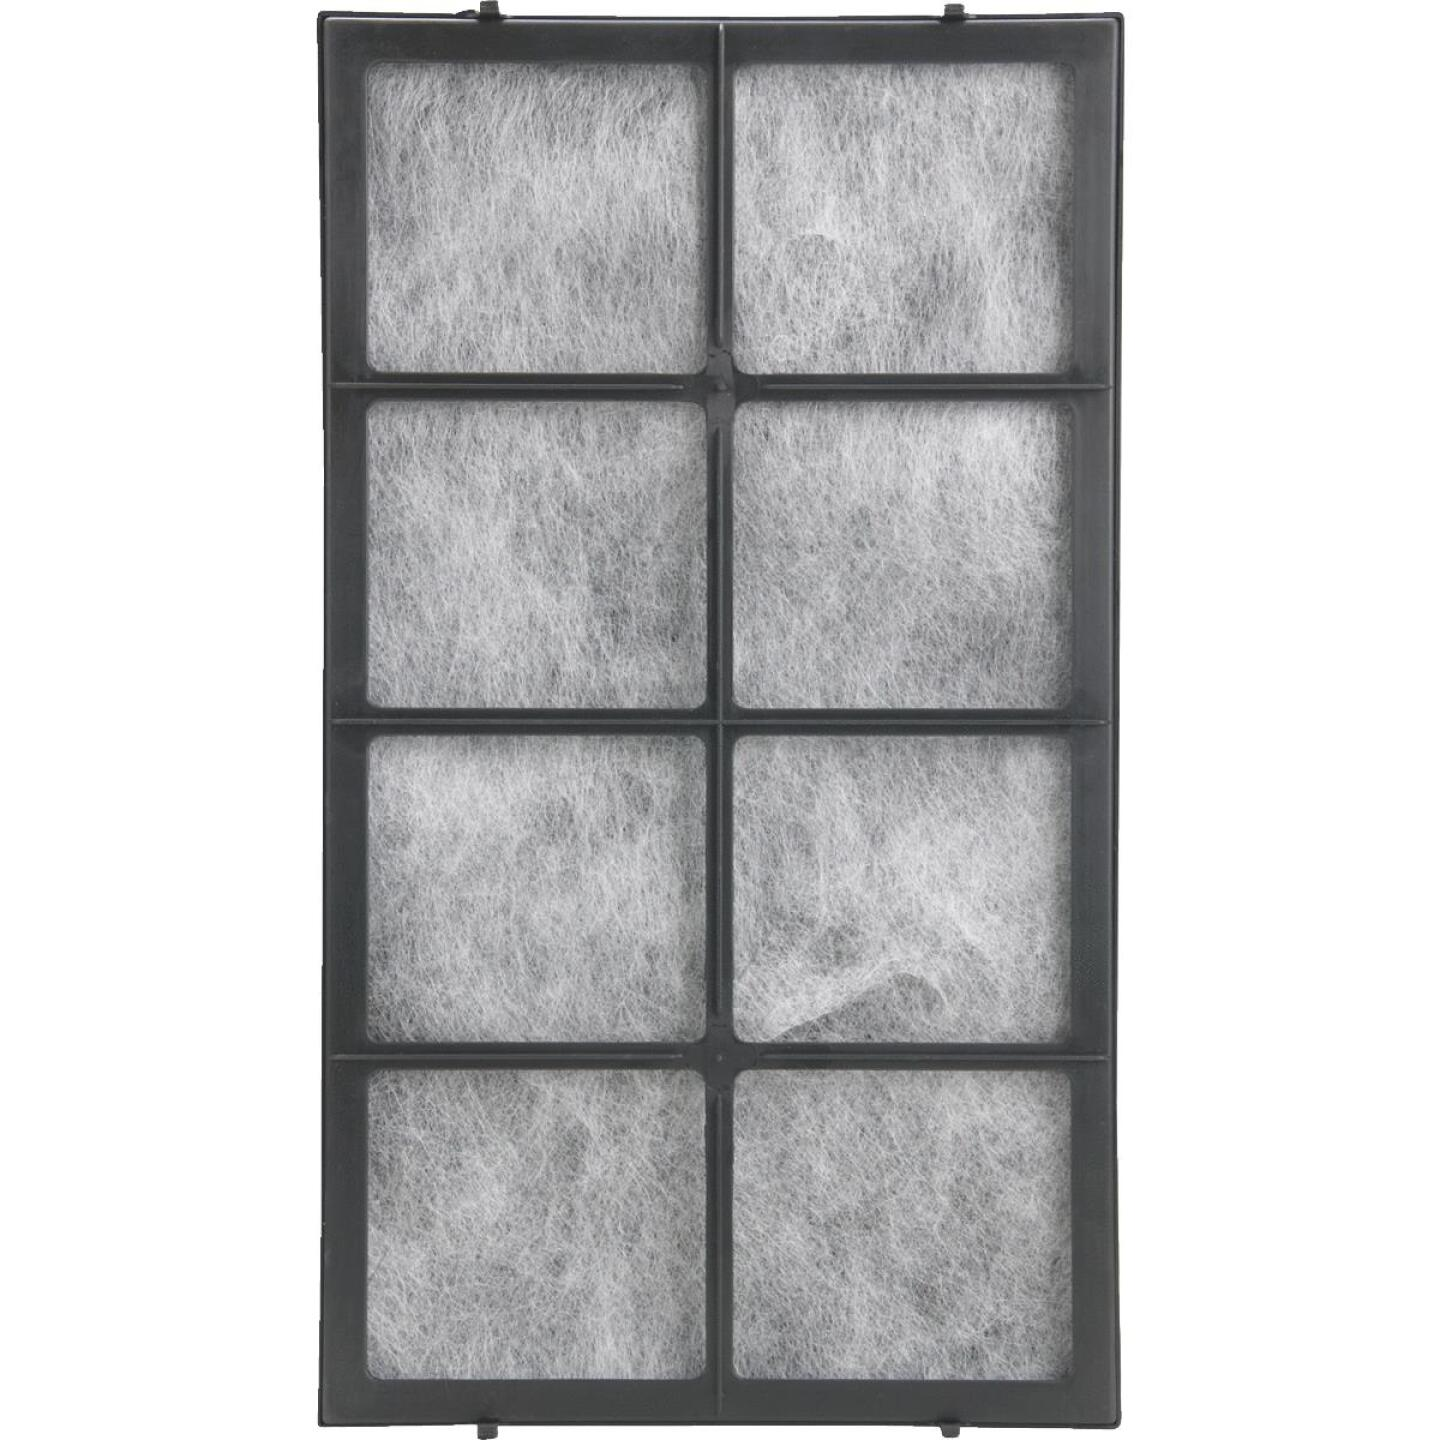 Essick Air AIRCARE 1051 Humidifier Filter with Air Filter Image 1